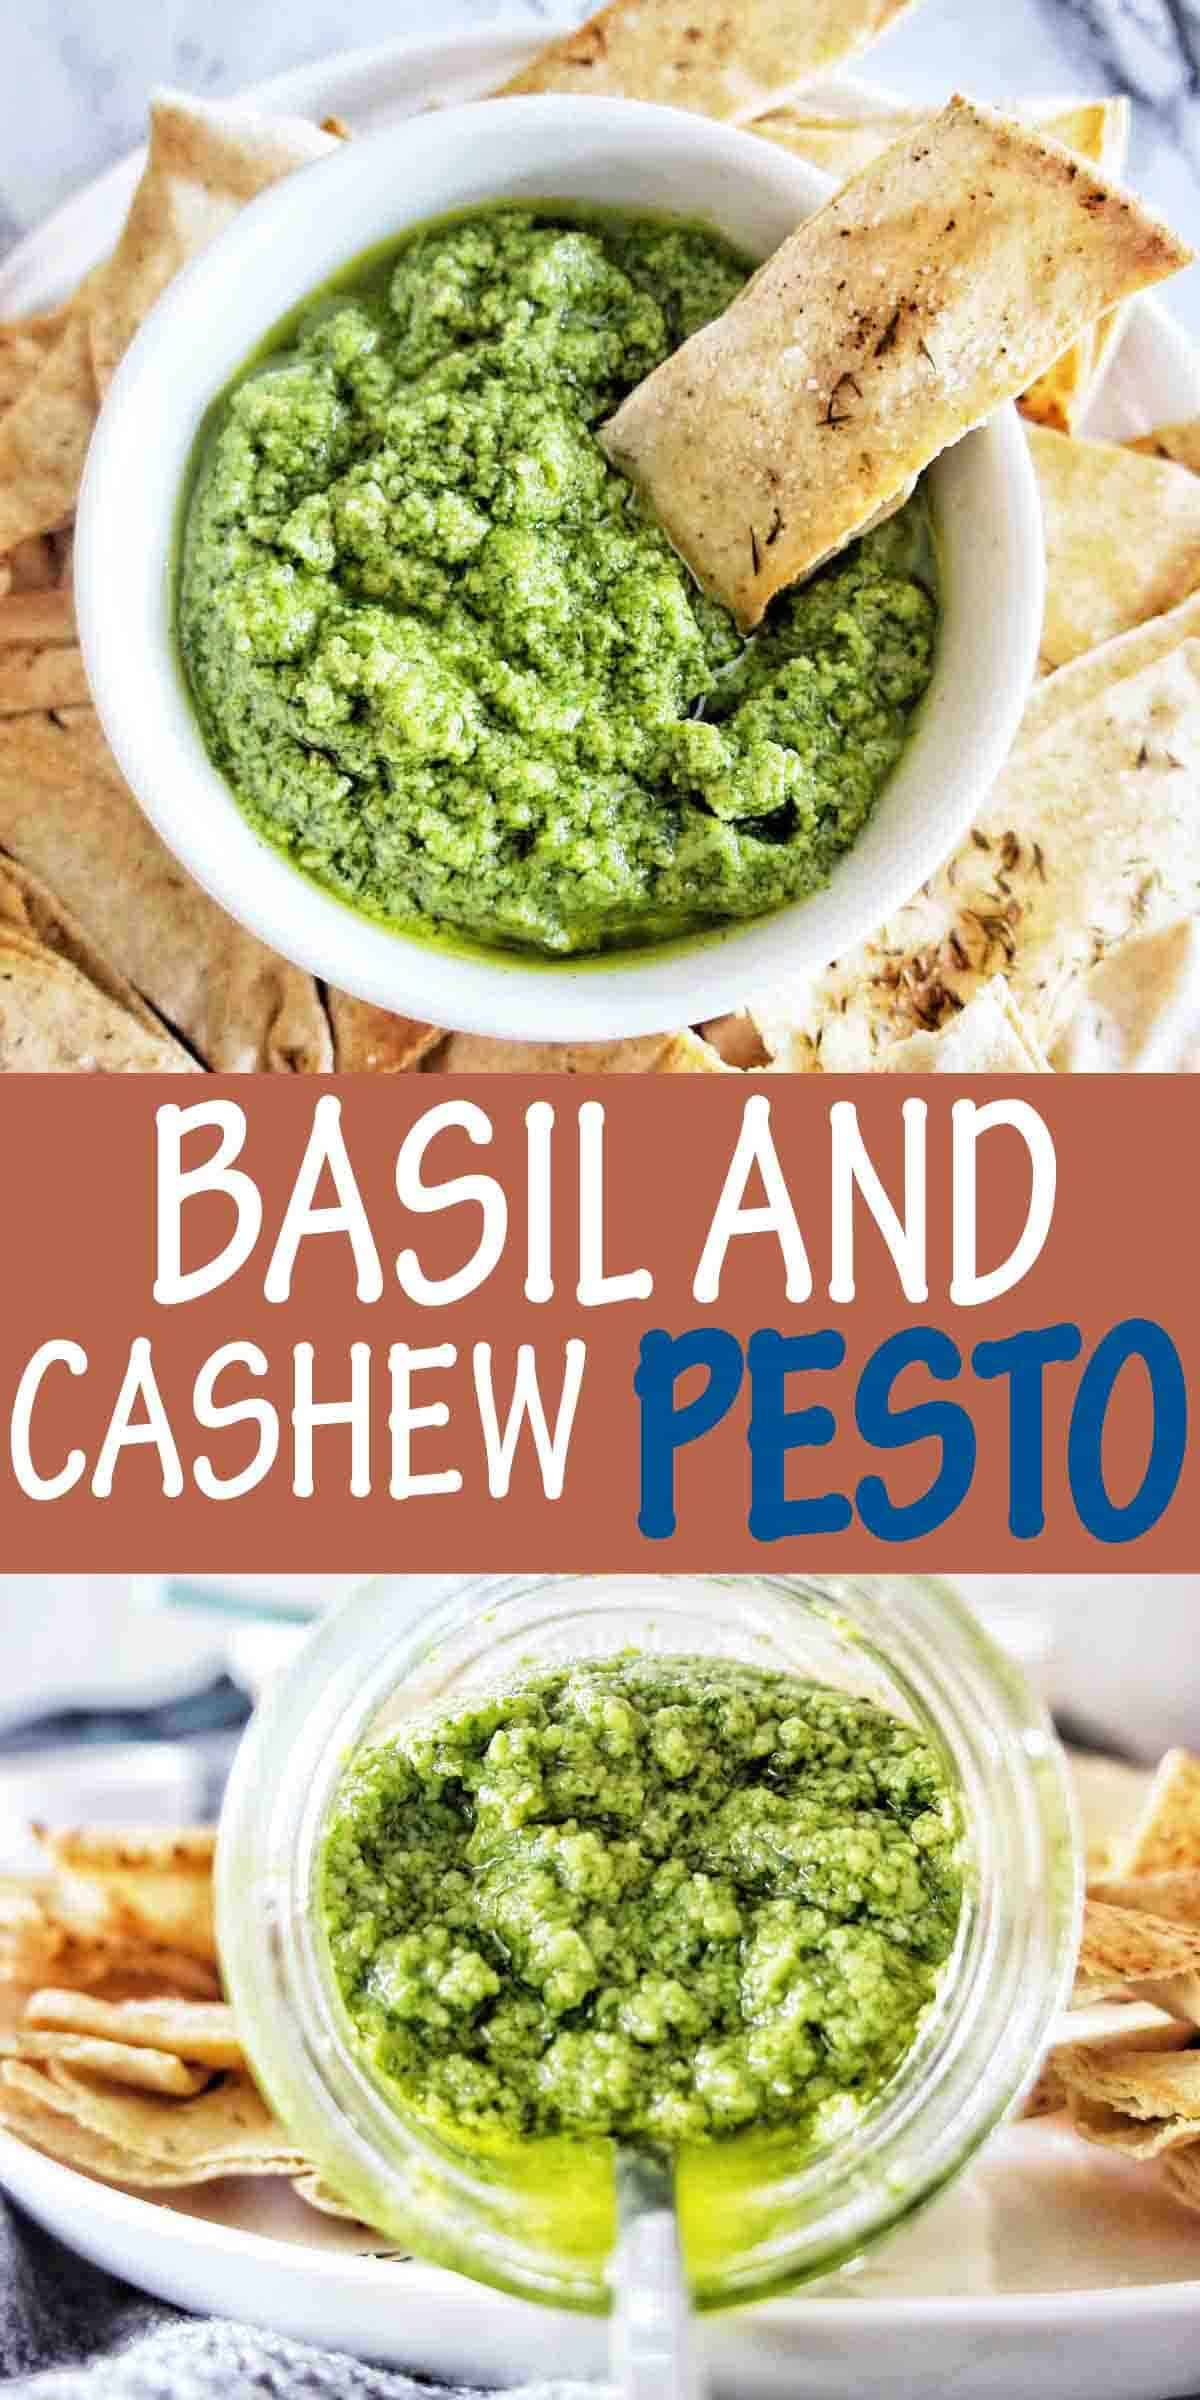 Basil and Cashew Pesto with text over lay